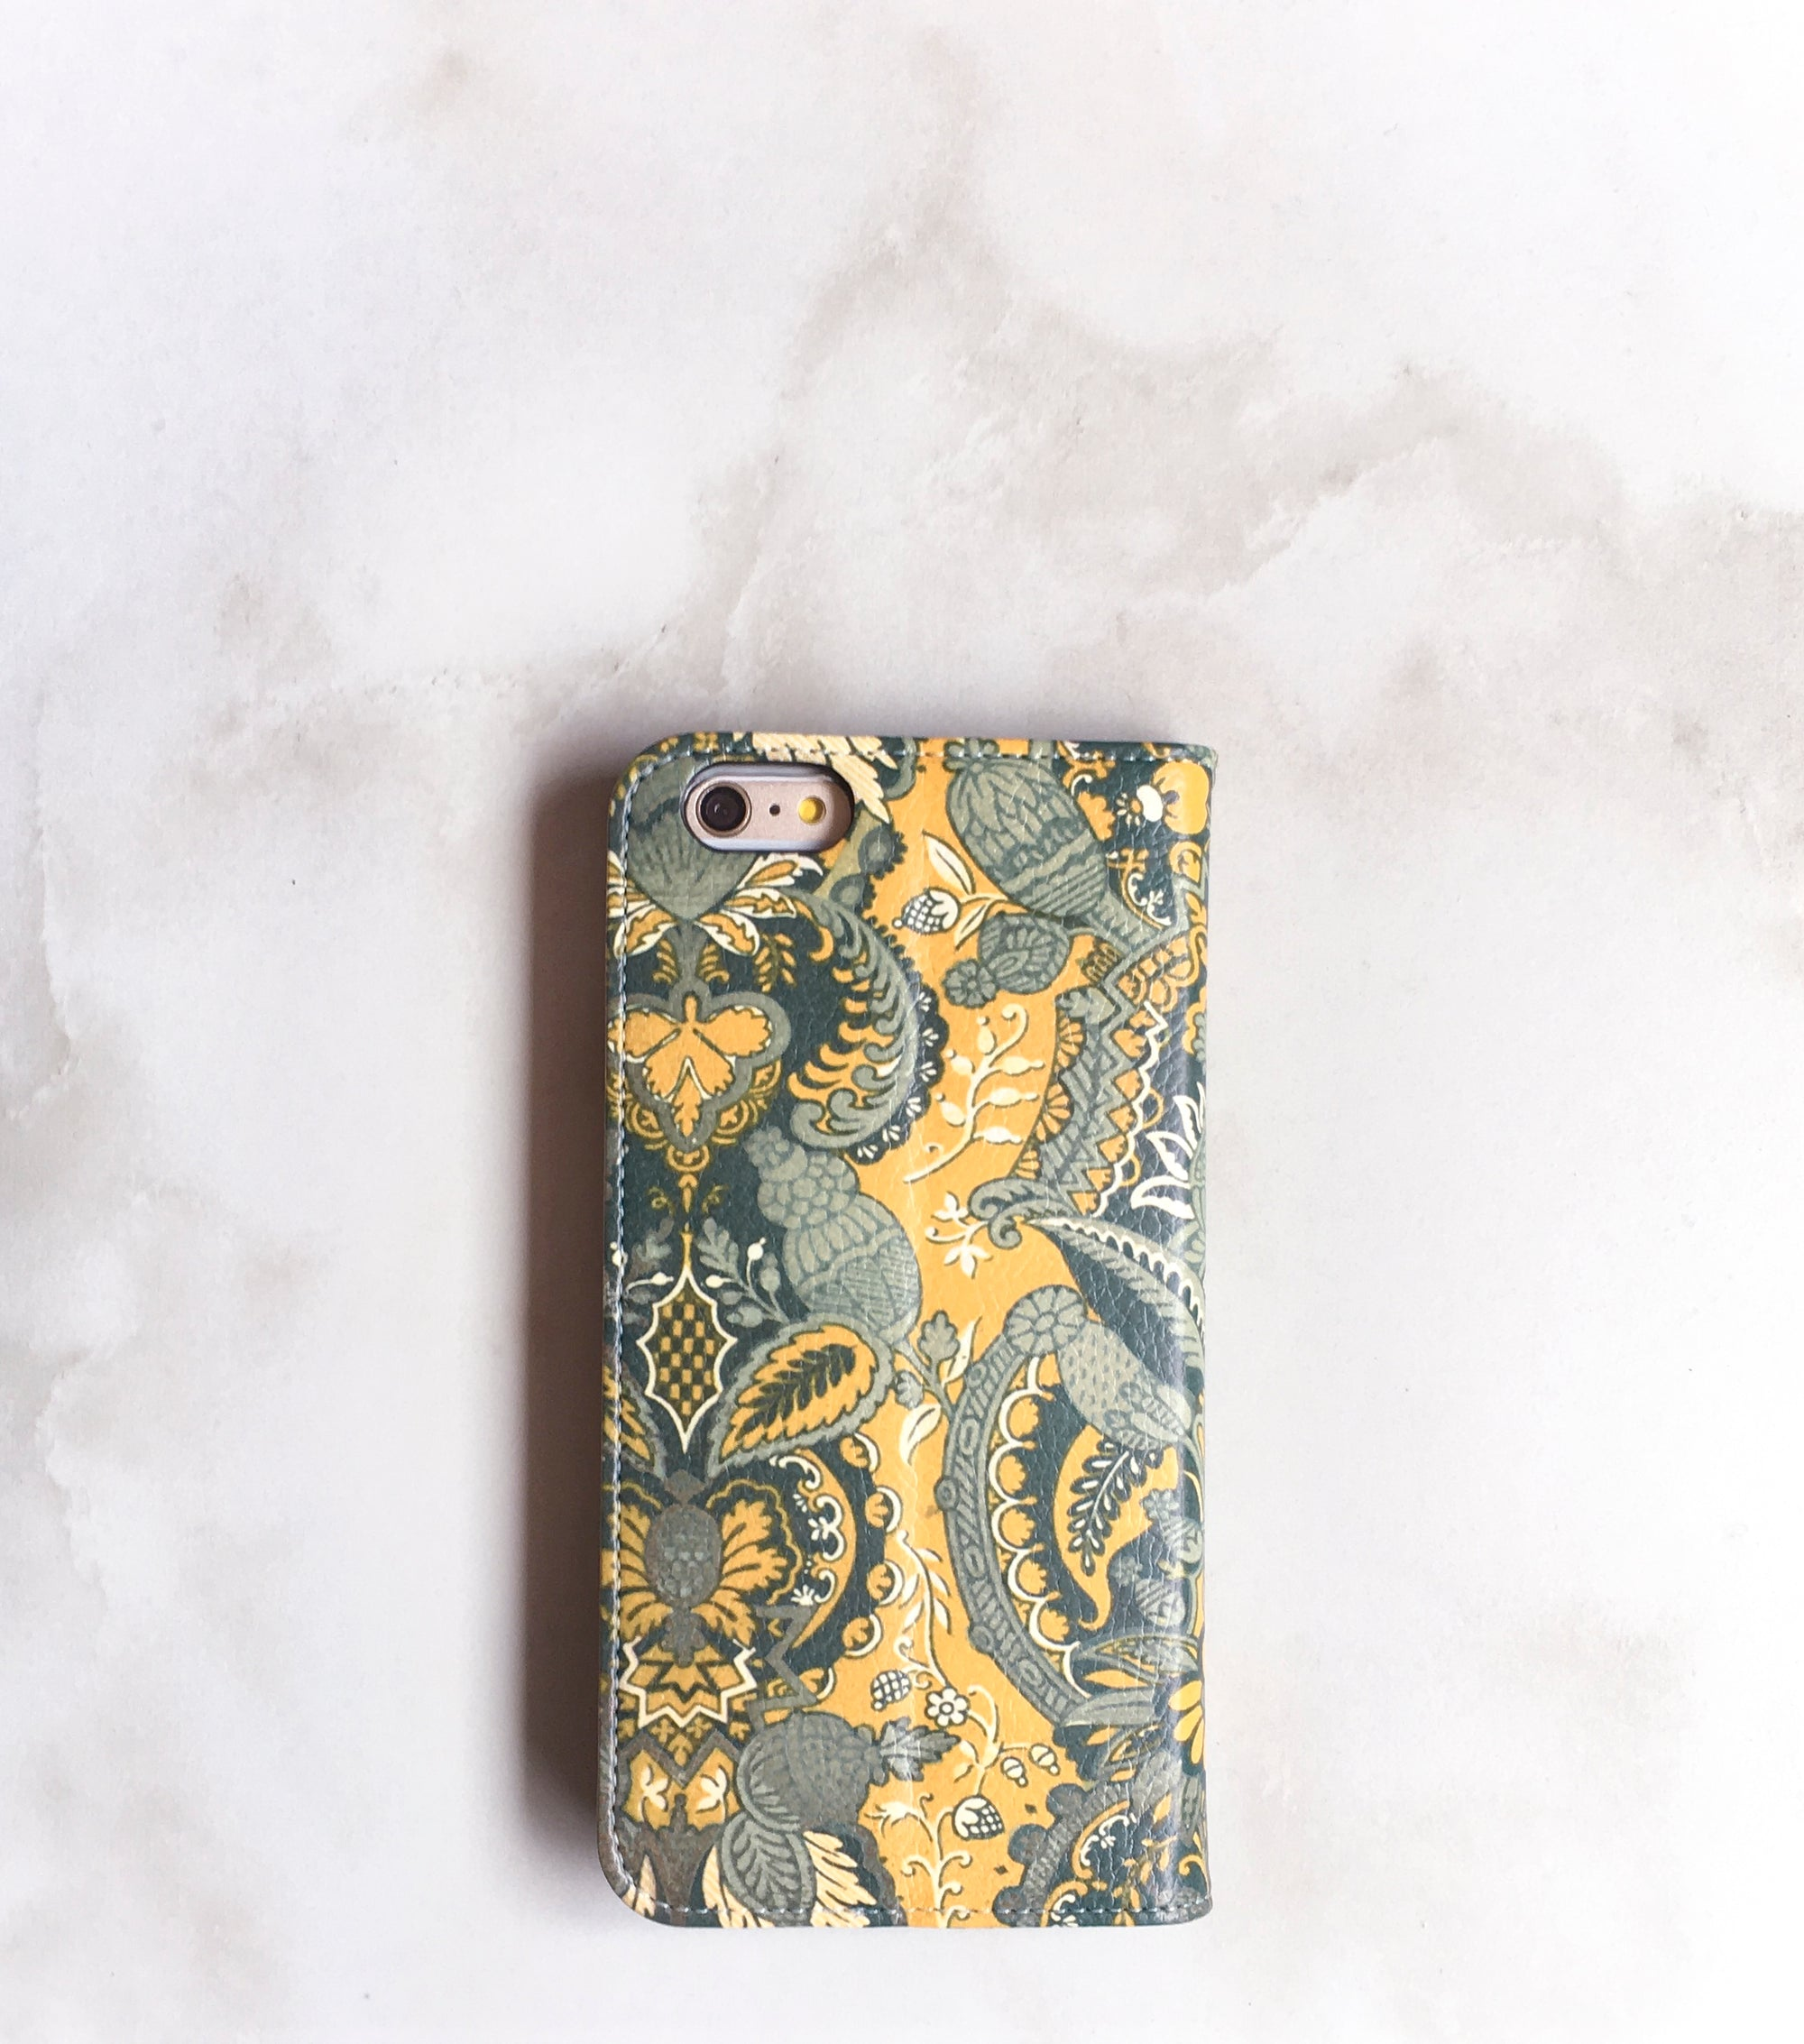 Bohemian iPhone 7 Wallet case